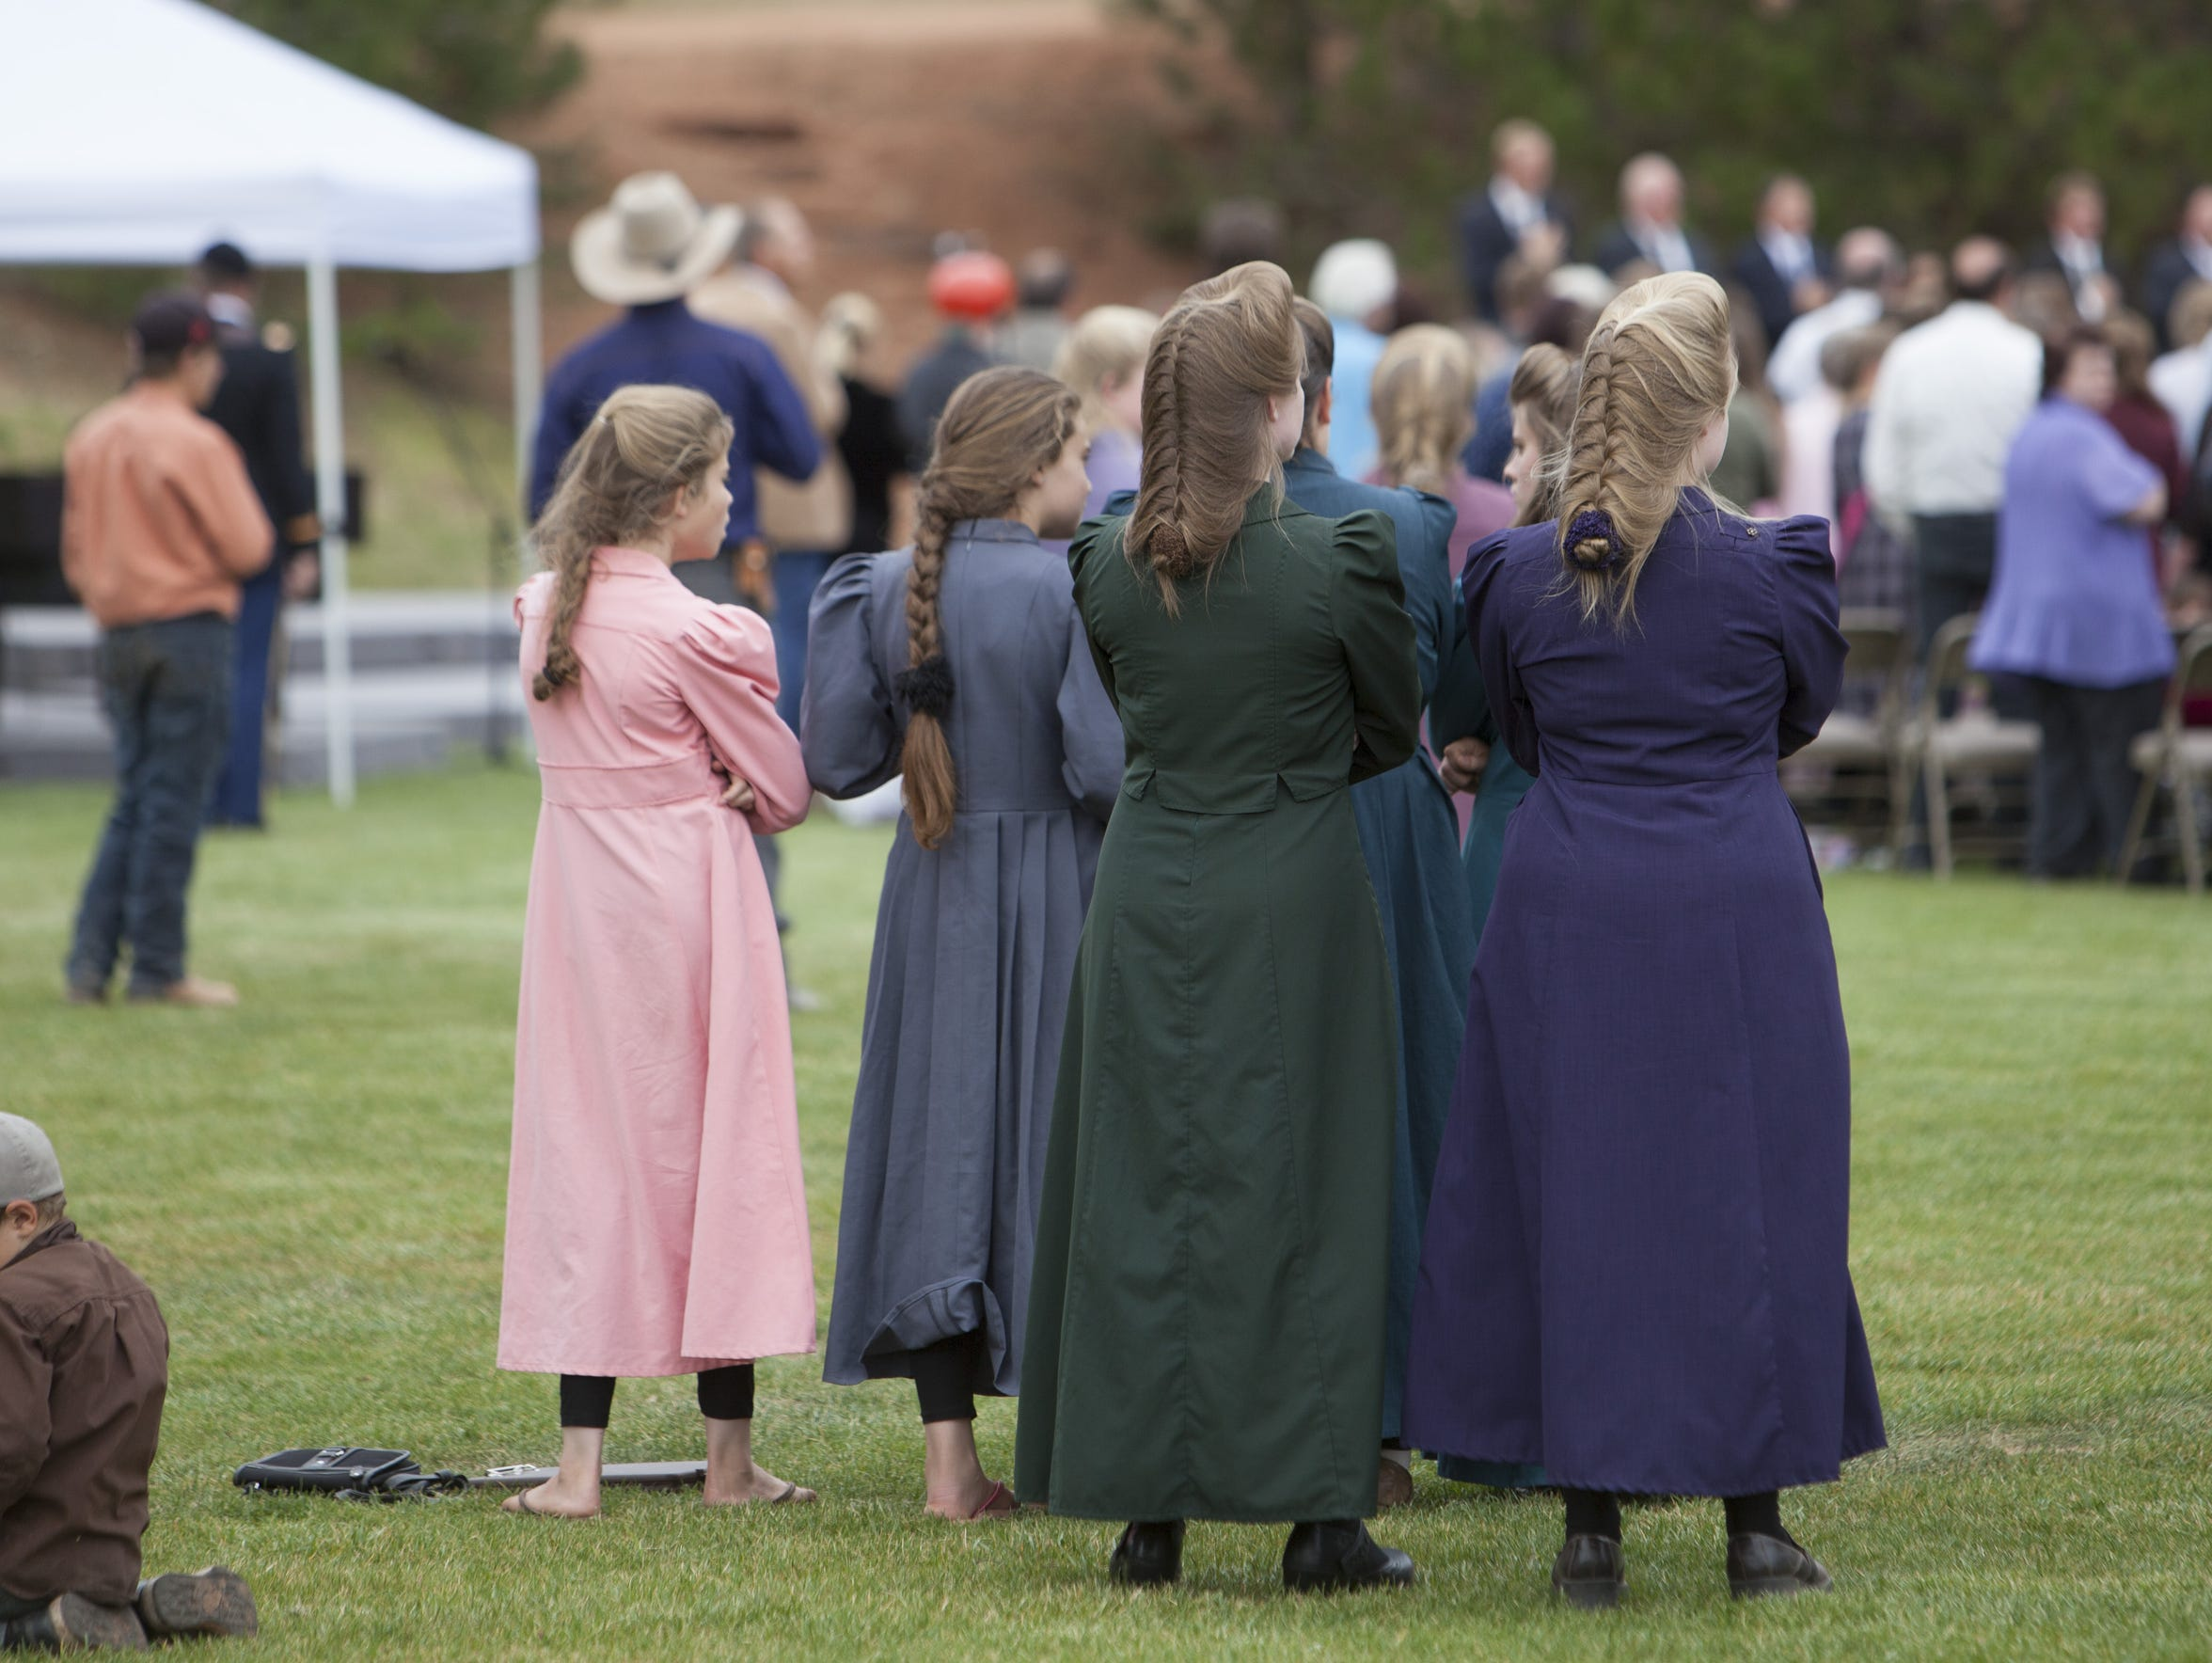 Southern Utah towns are seeing an influx of FLDS families.